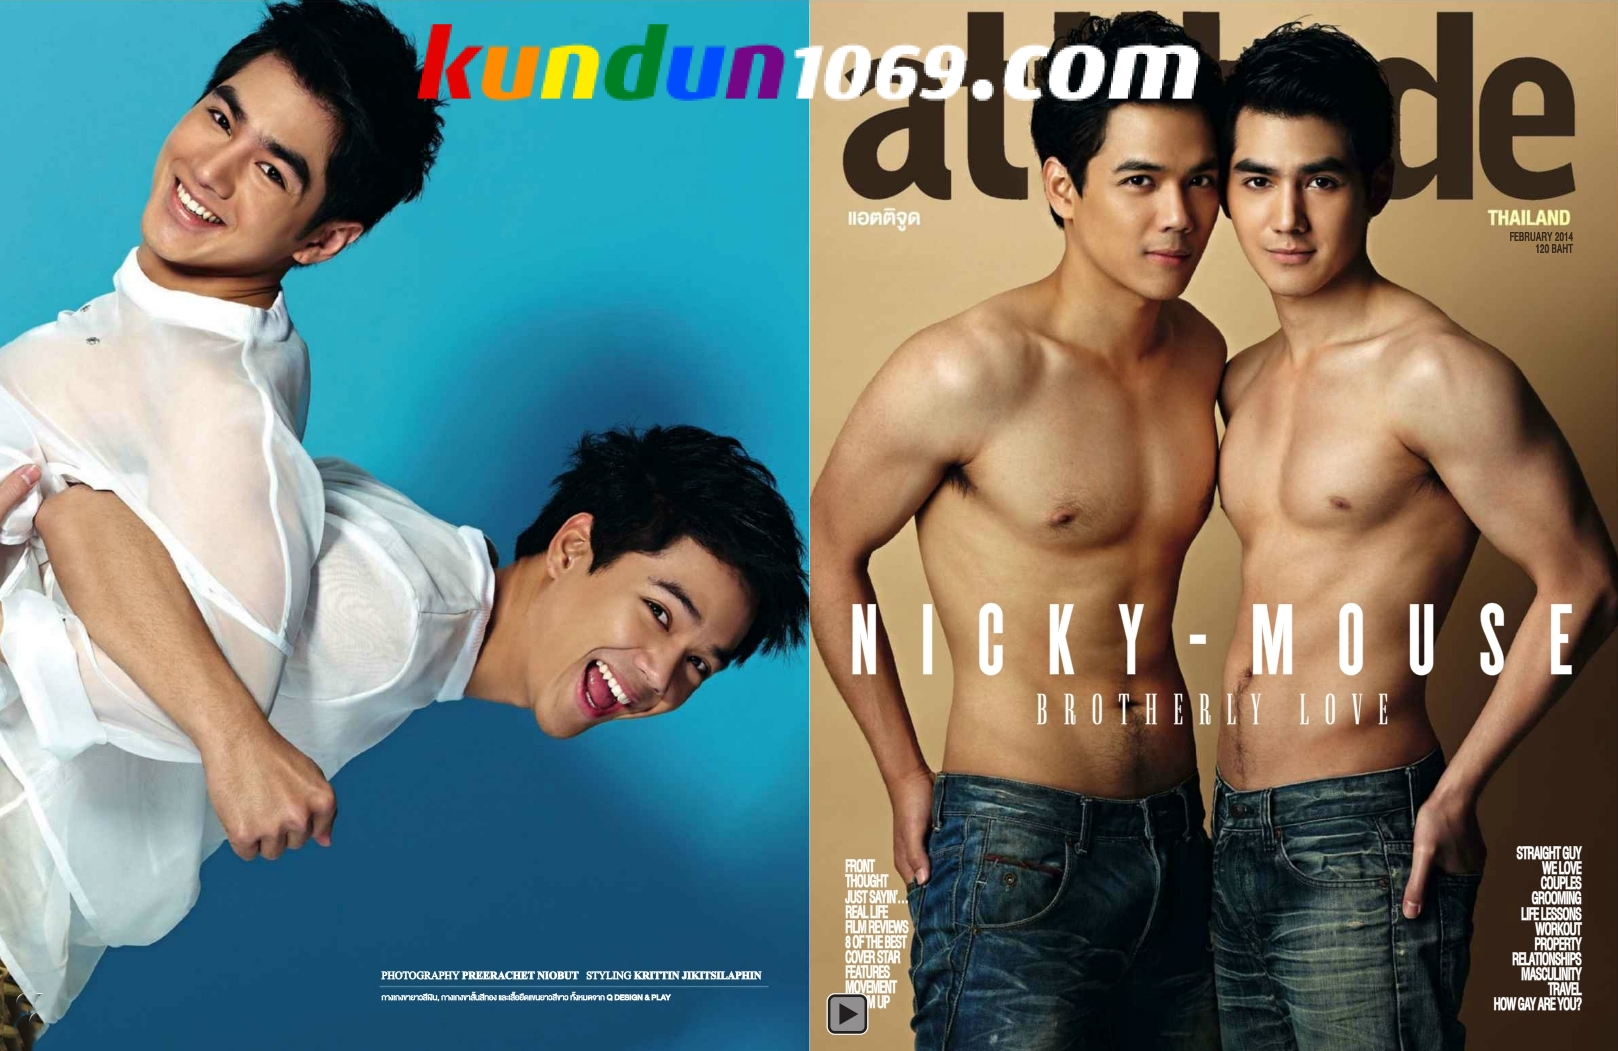 [PHOTO SET] ATTITUDE FEBRUARY 2014 – NICKY – MOUSE -BROTHERLY LOVE-